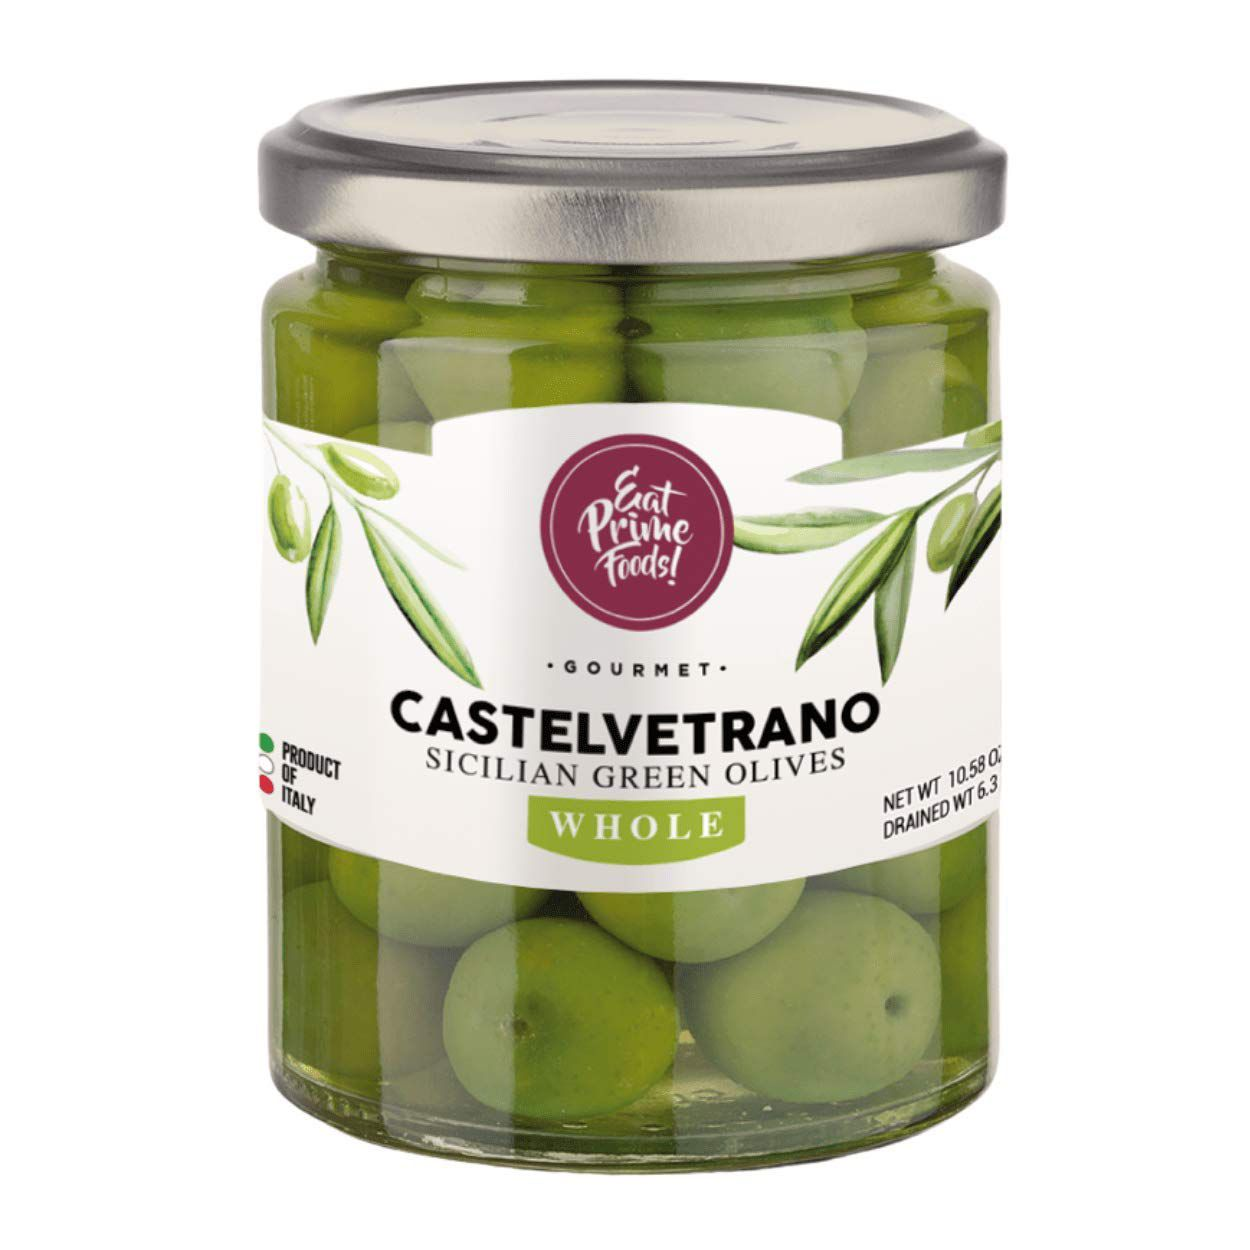 Eat Prime Foods Pitted Sicilian Green Castelvetrano Olives